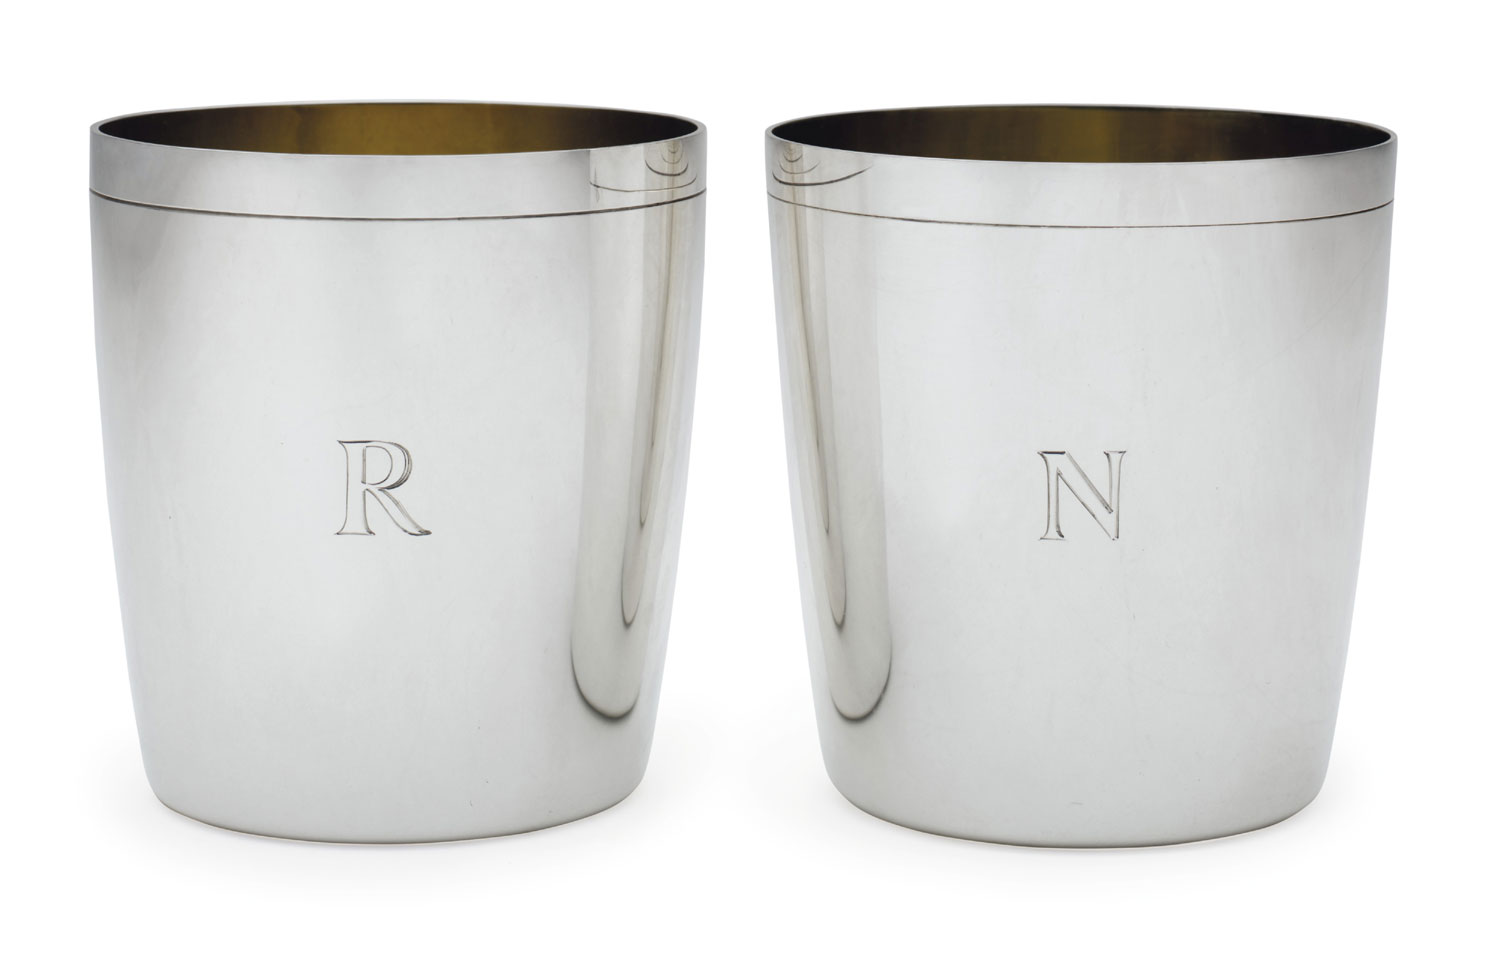 Each beaker is engraved on the outside with the initial R or N.